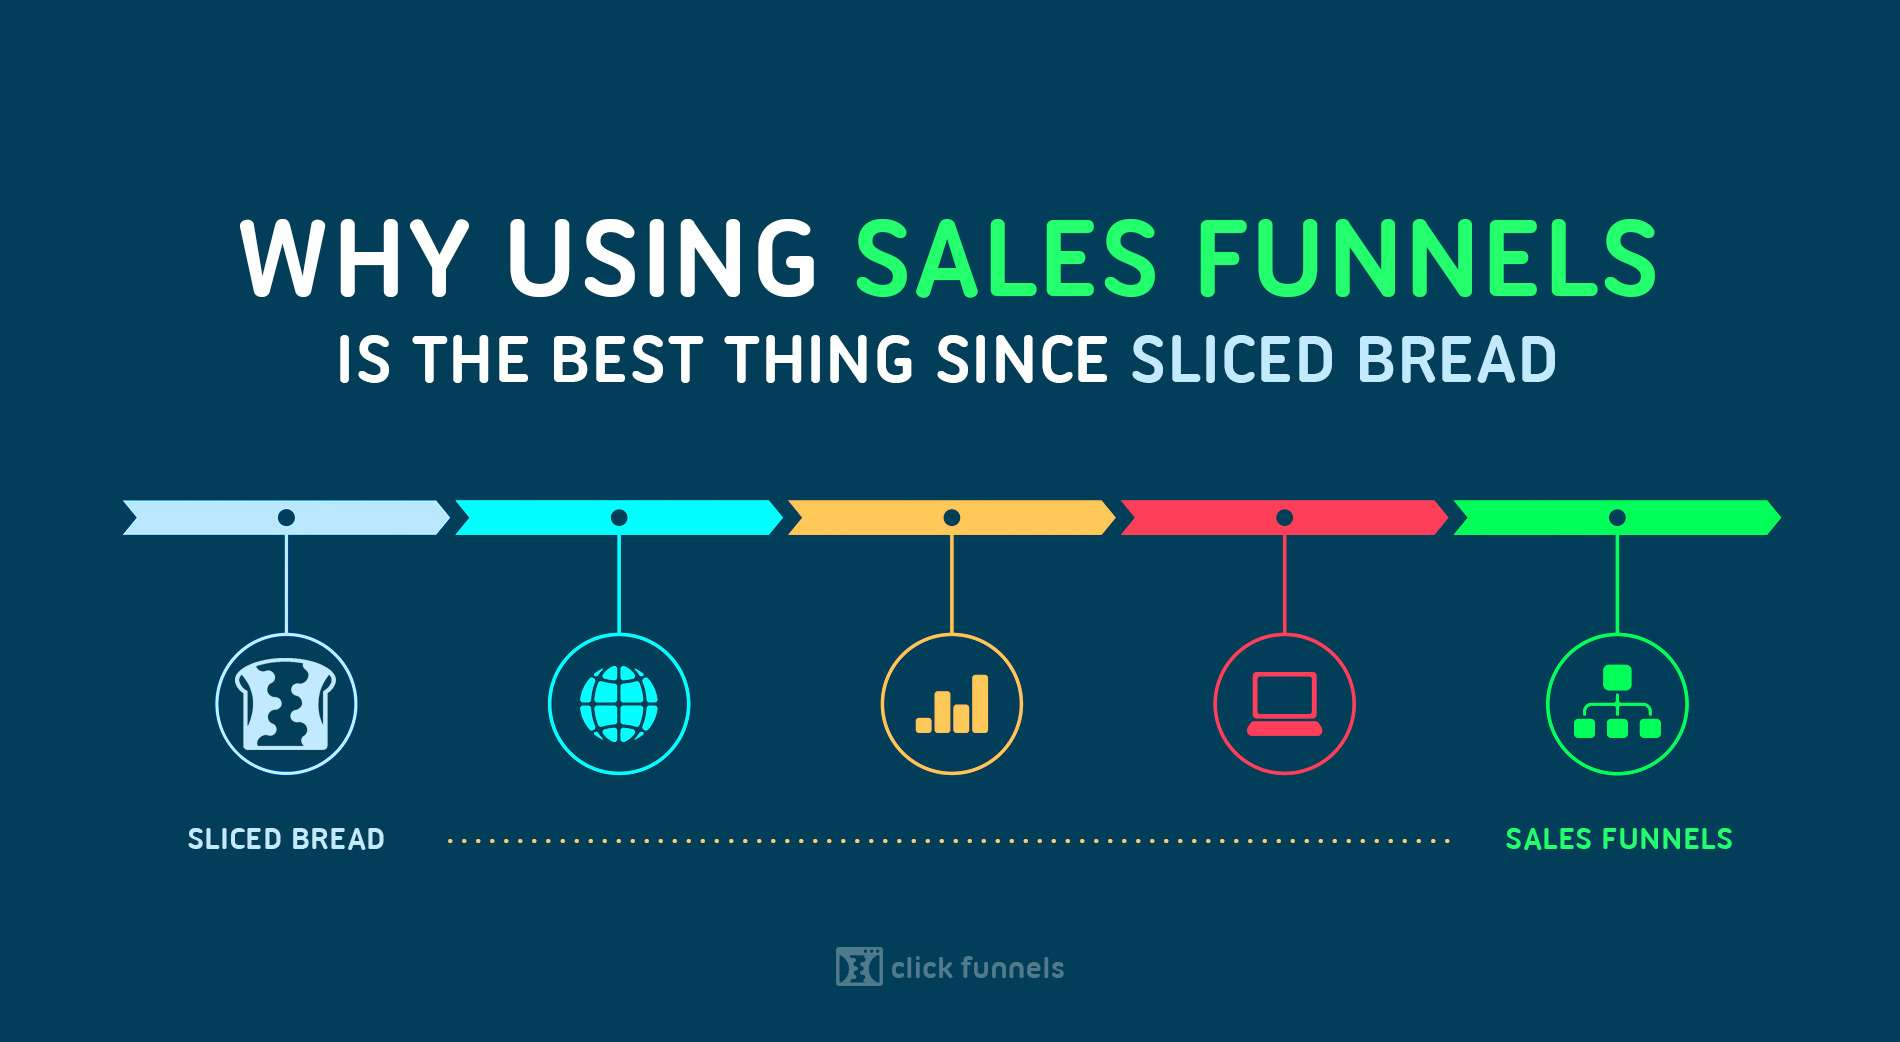 Why Using Sales Funnels Are The Best Thing Since Sliced Bread